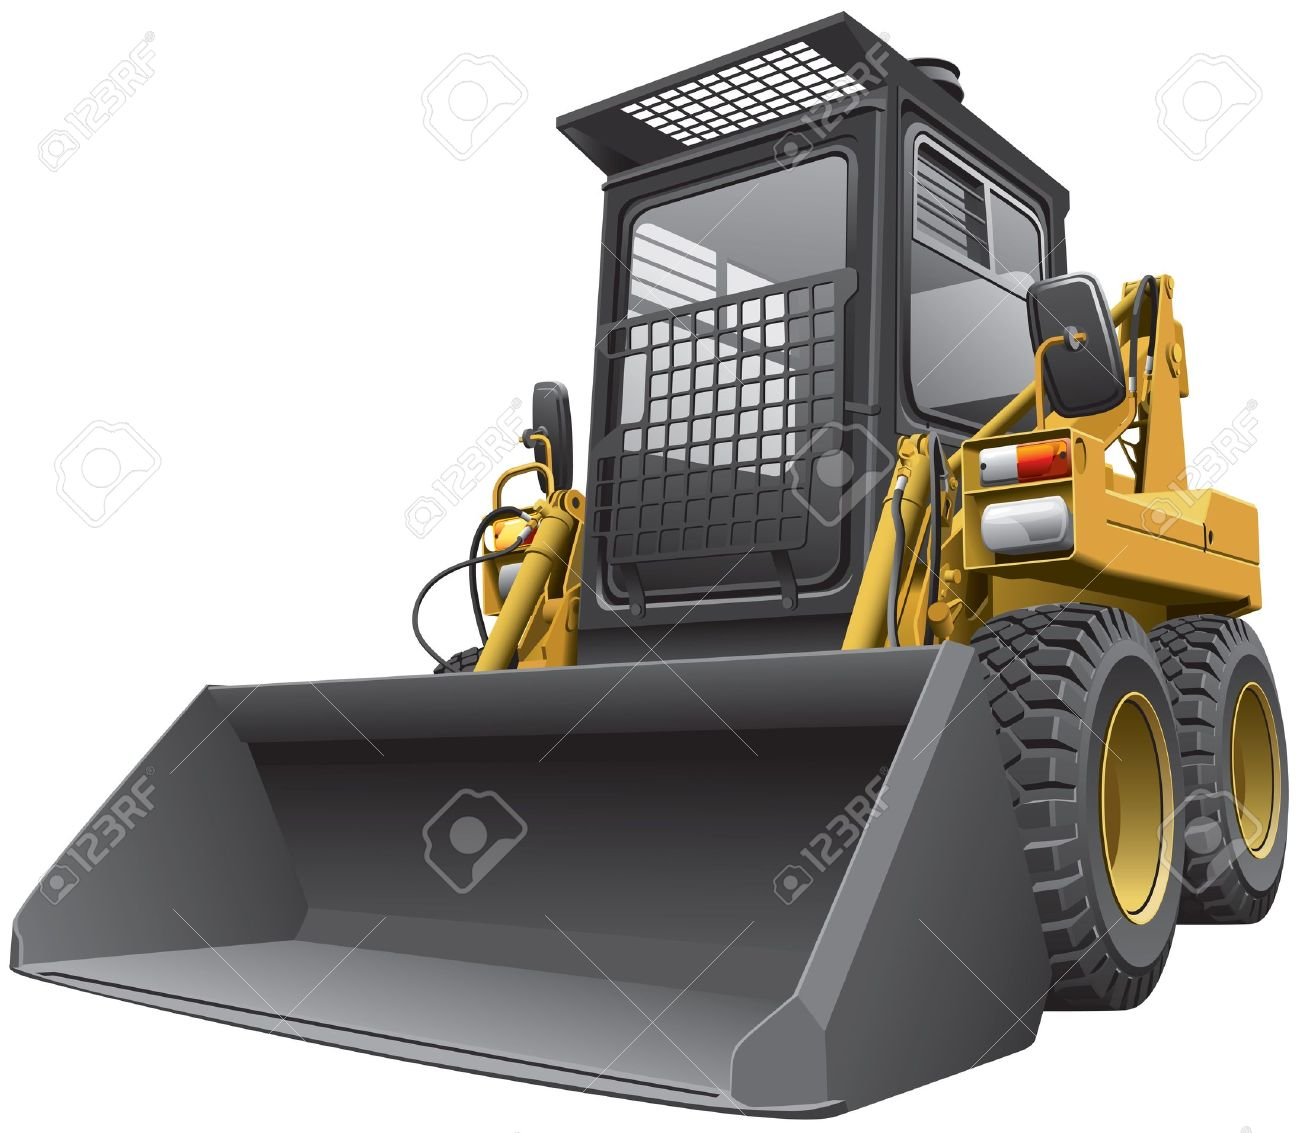 Bobcat clipart lion's Loader Skid Loader Rental Images